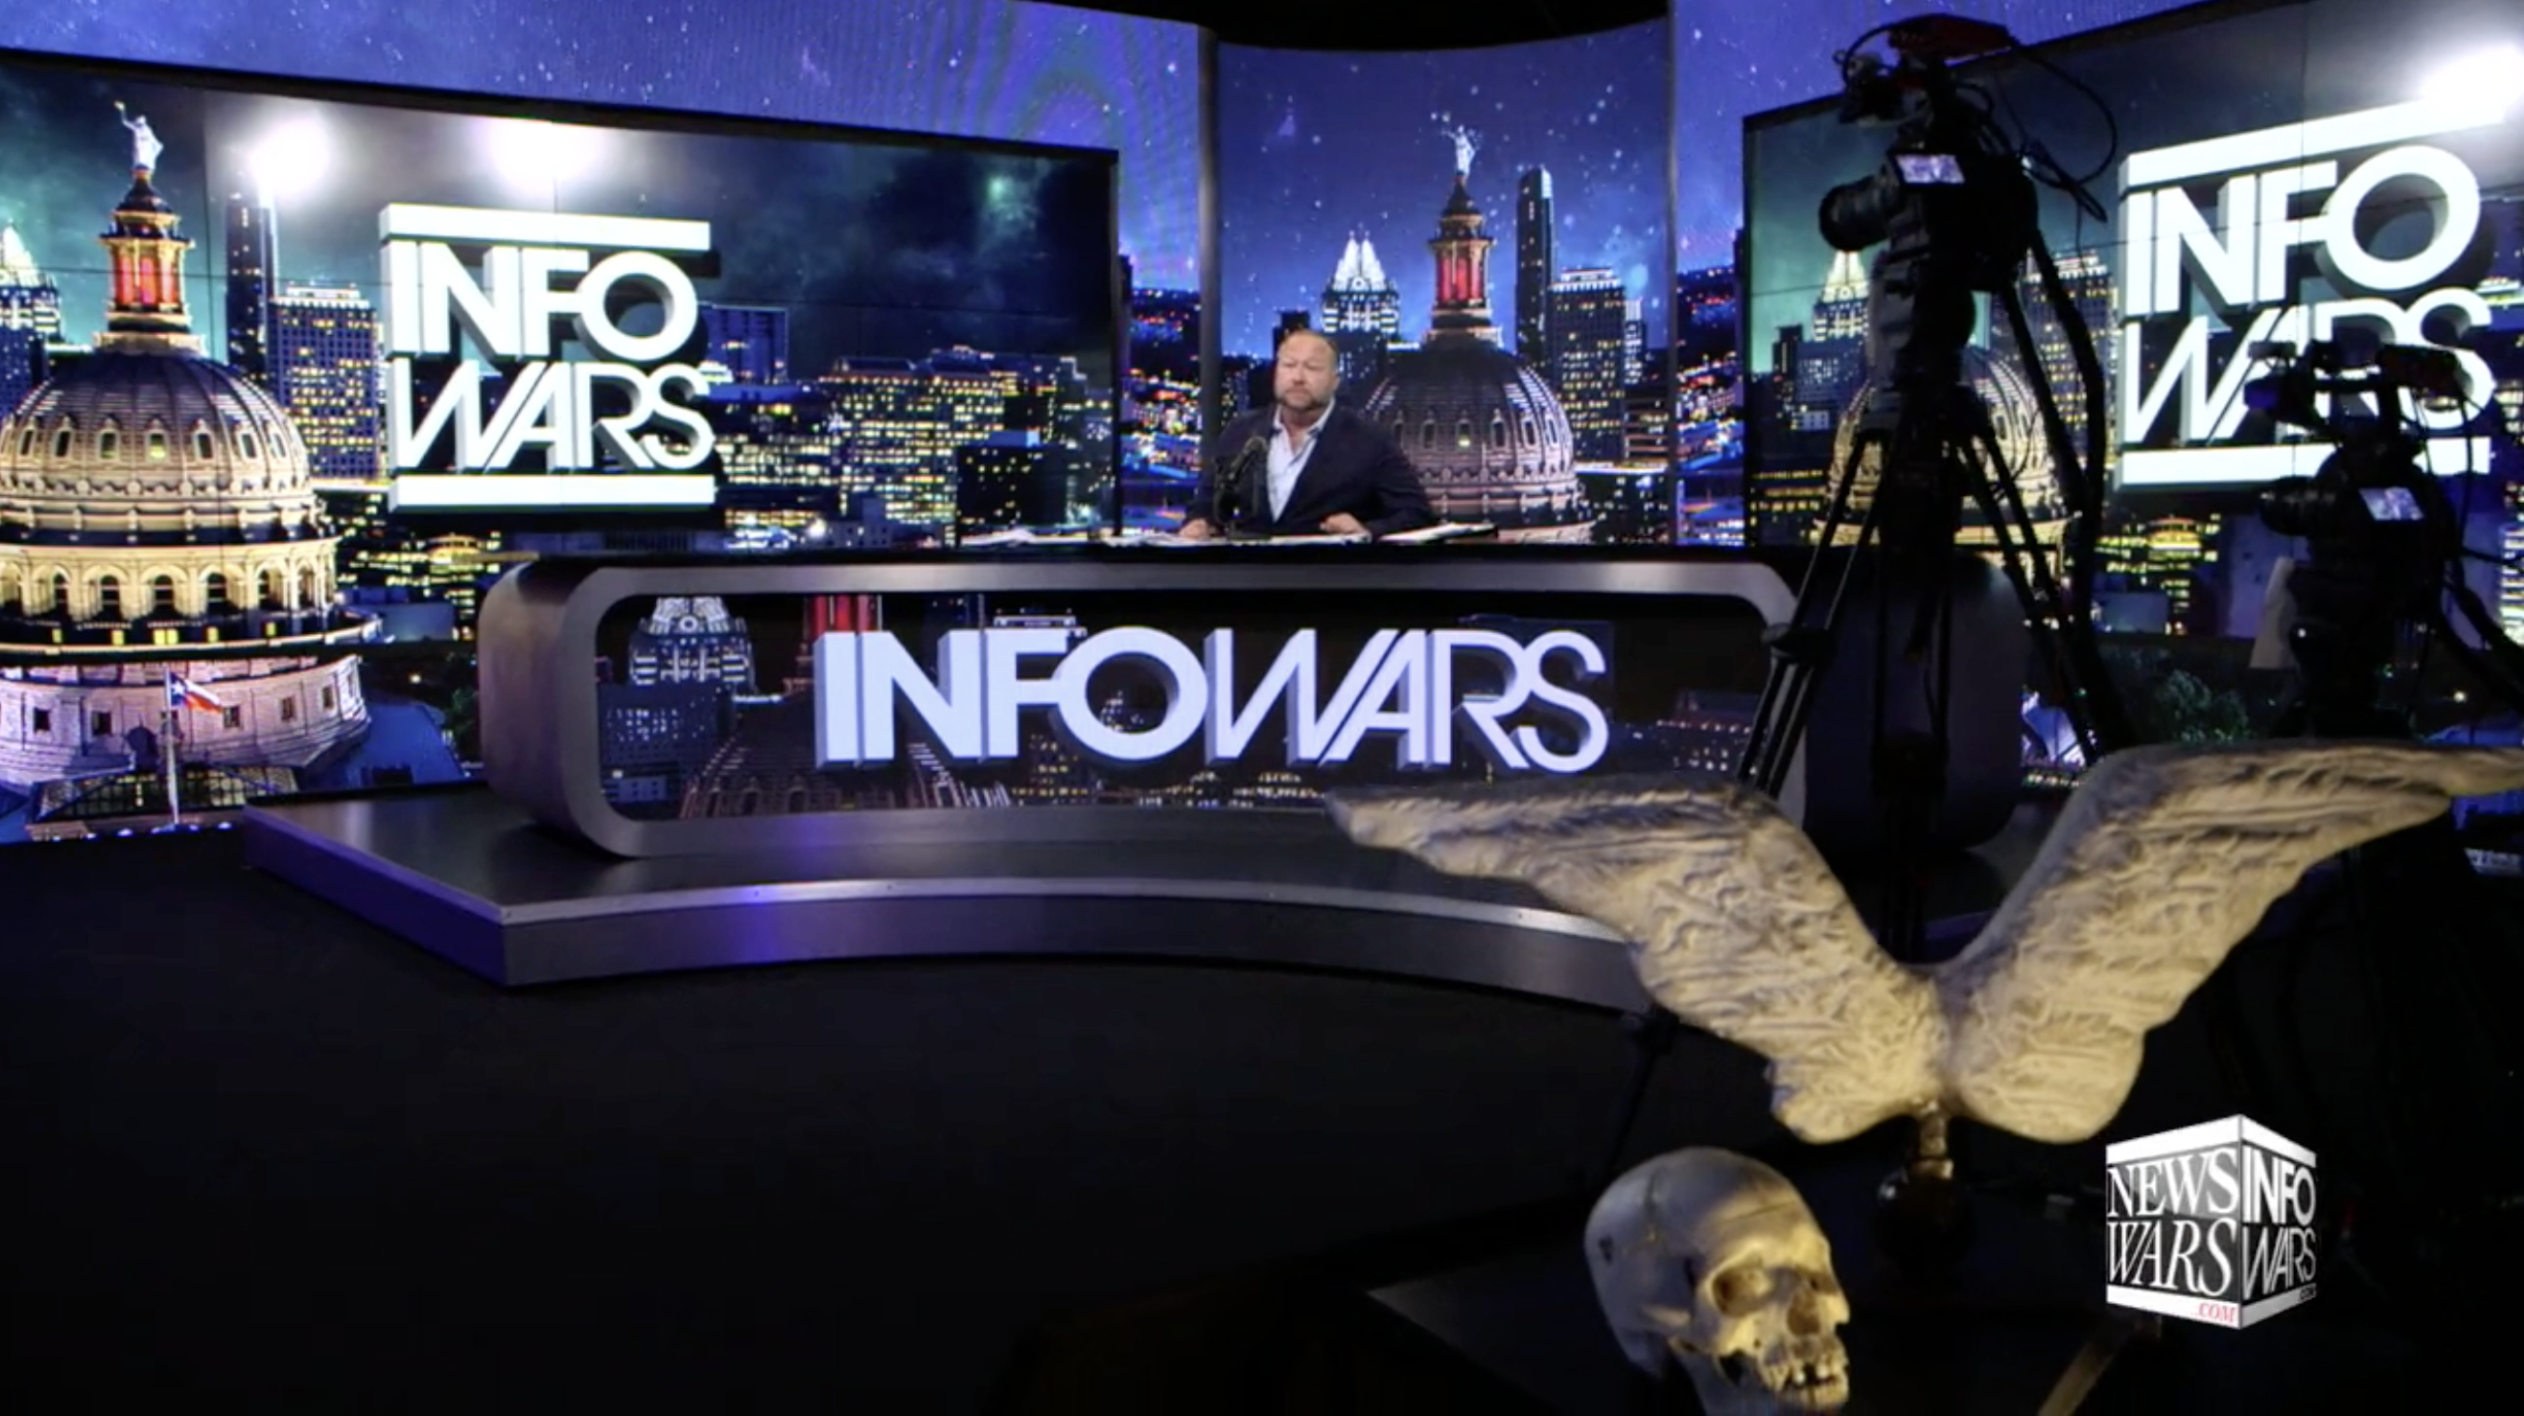 Alex Jones Infowars Studio Angel Wings Human Skull EXZM July 31st 2020